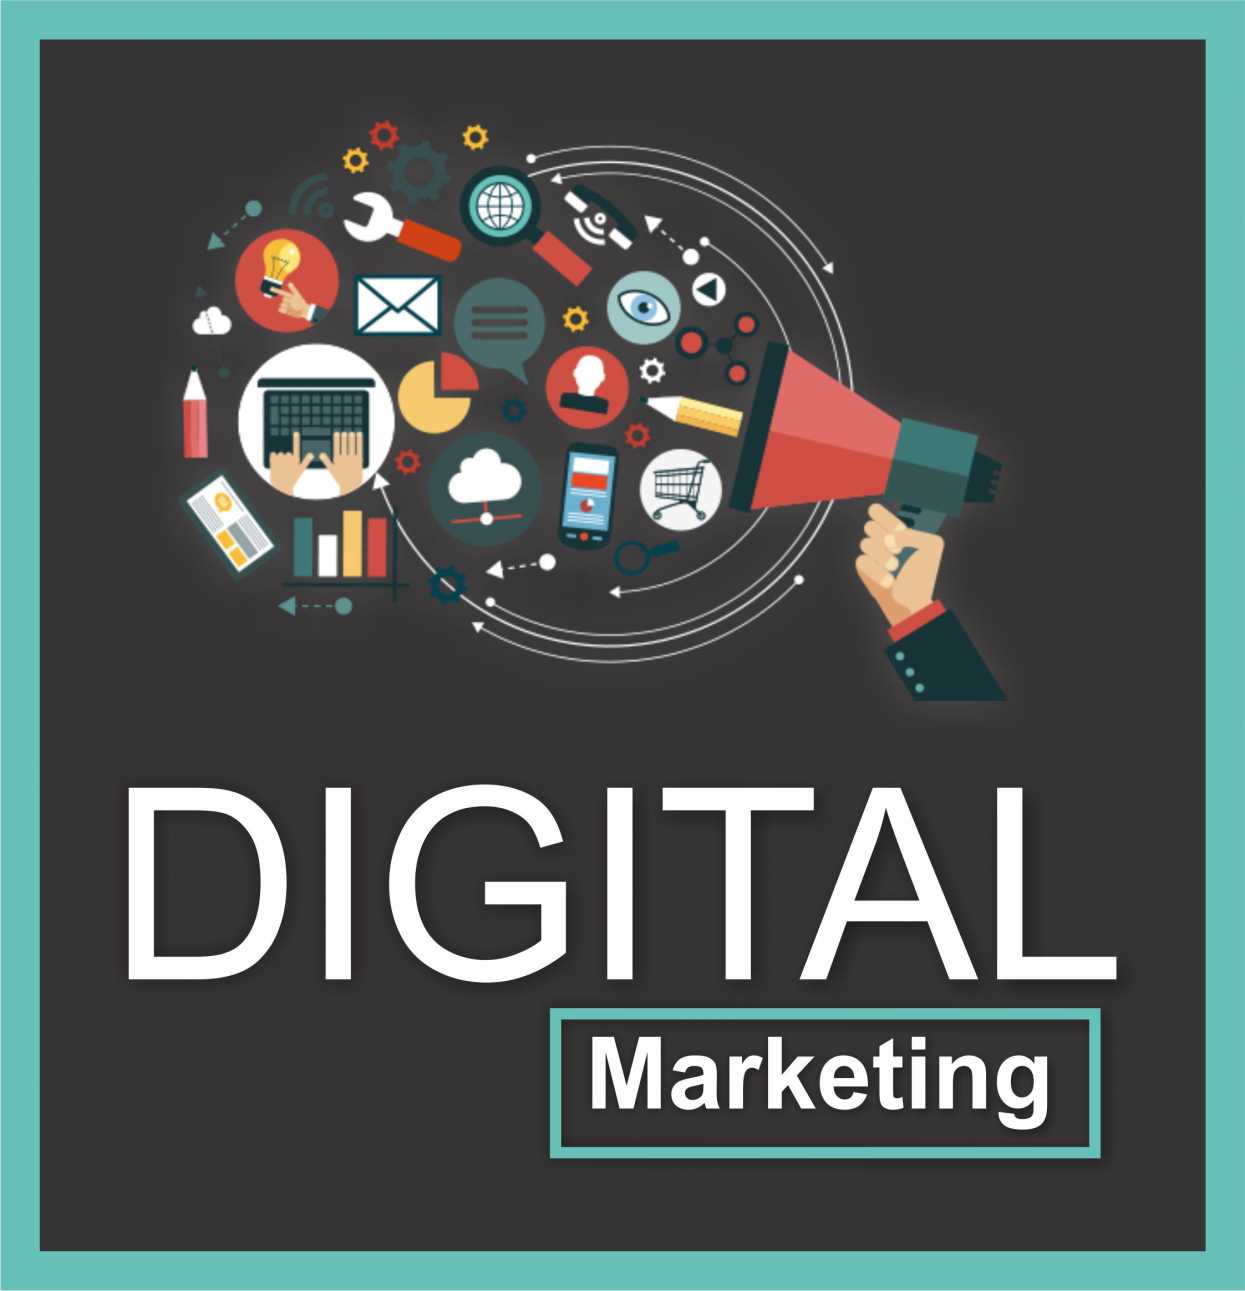 https://www.steppingskills.com/best-digital-marketing-institute-in-yamunanagar/